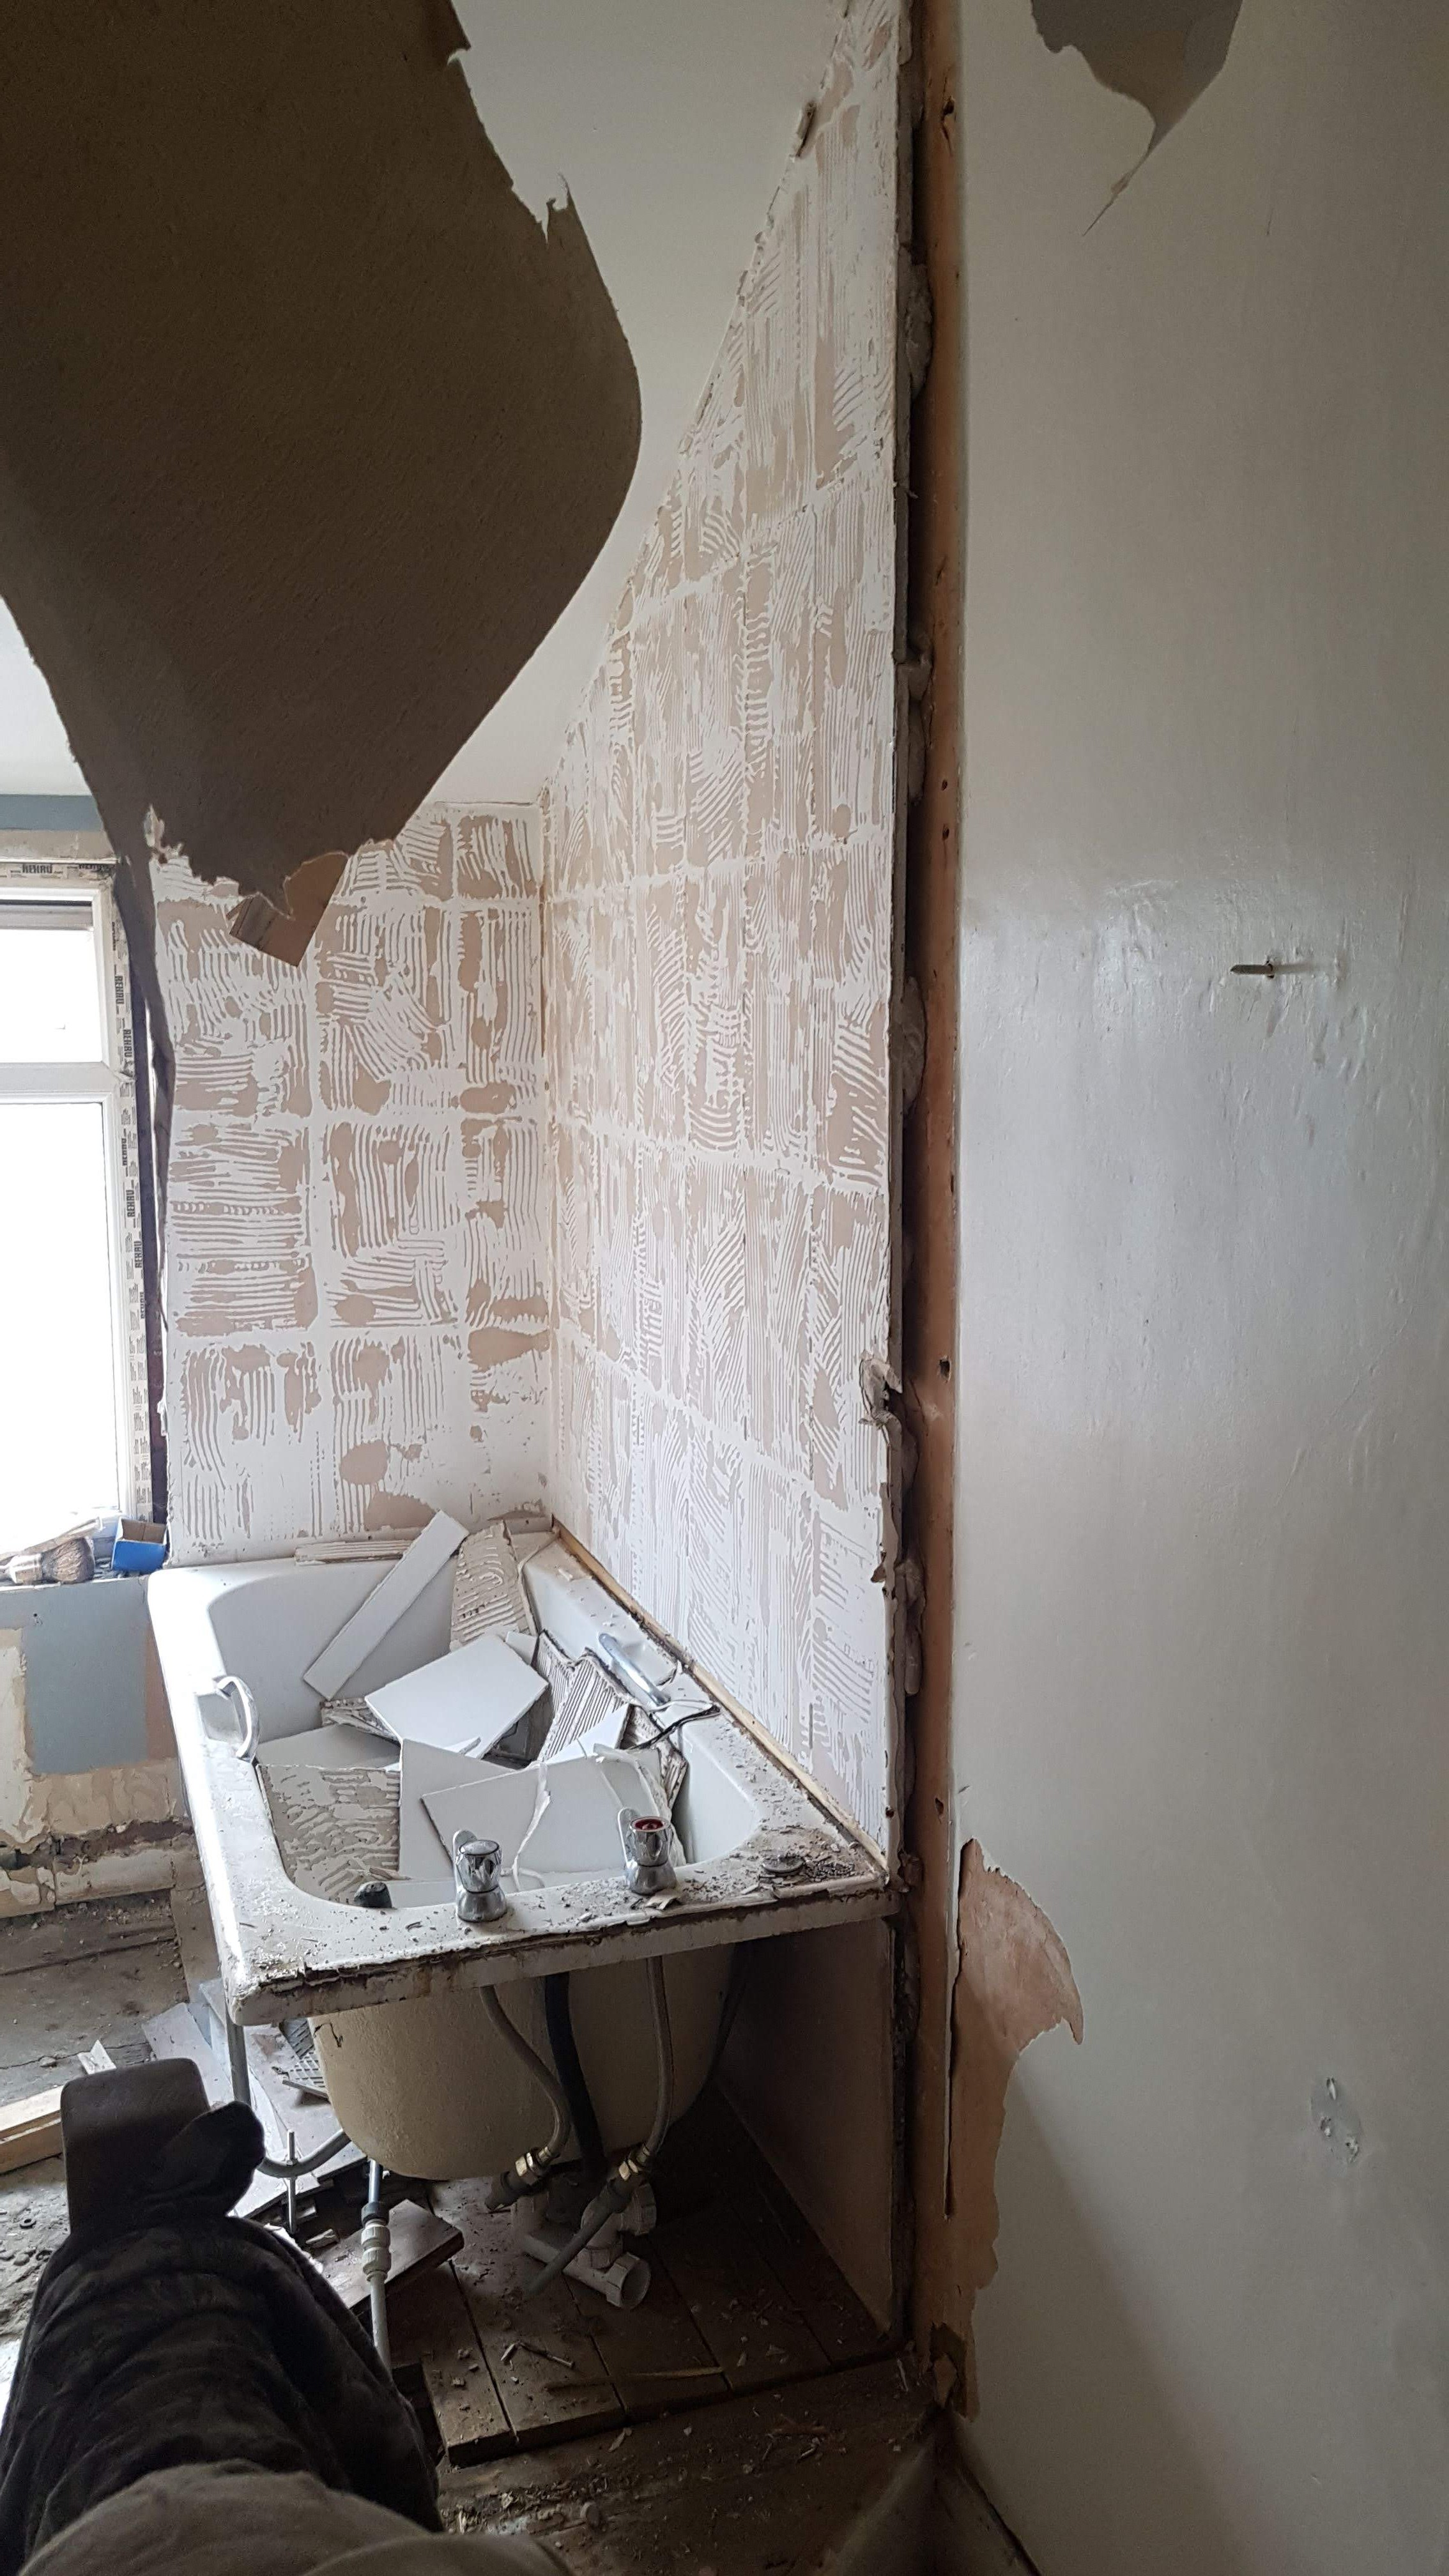 Tiles and wall removed